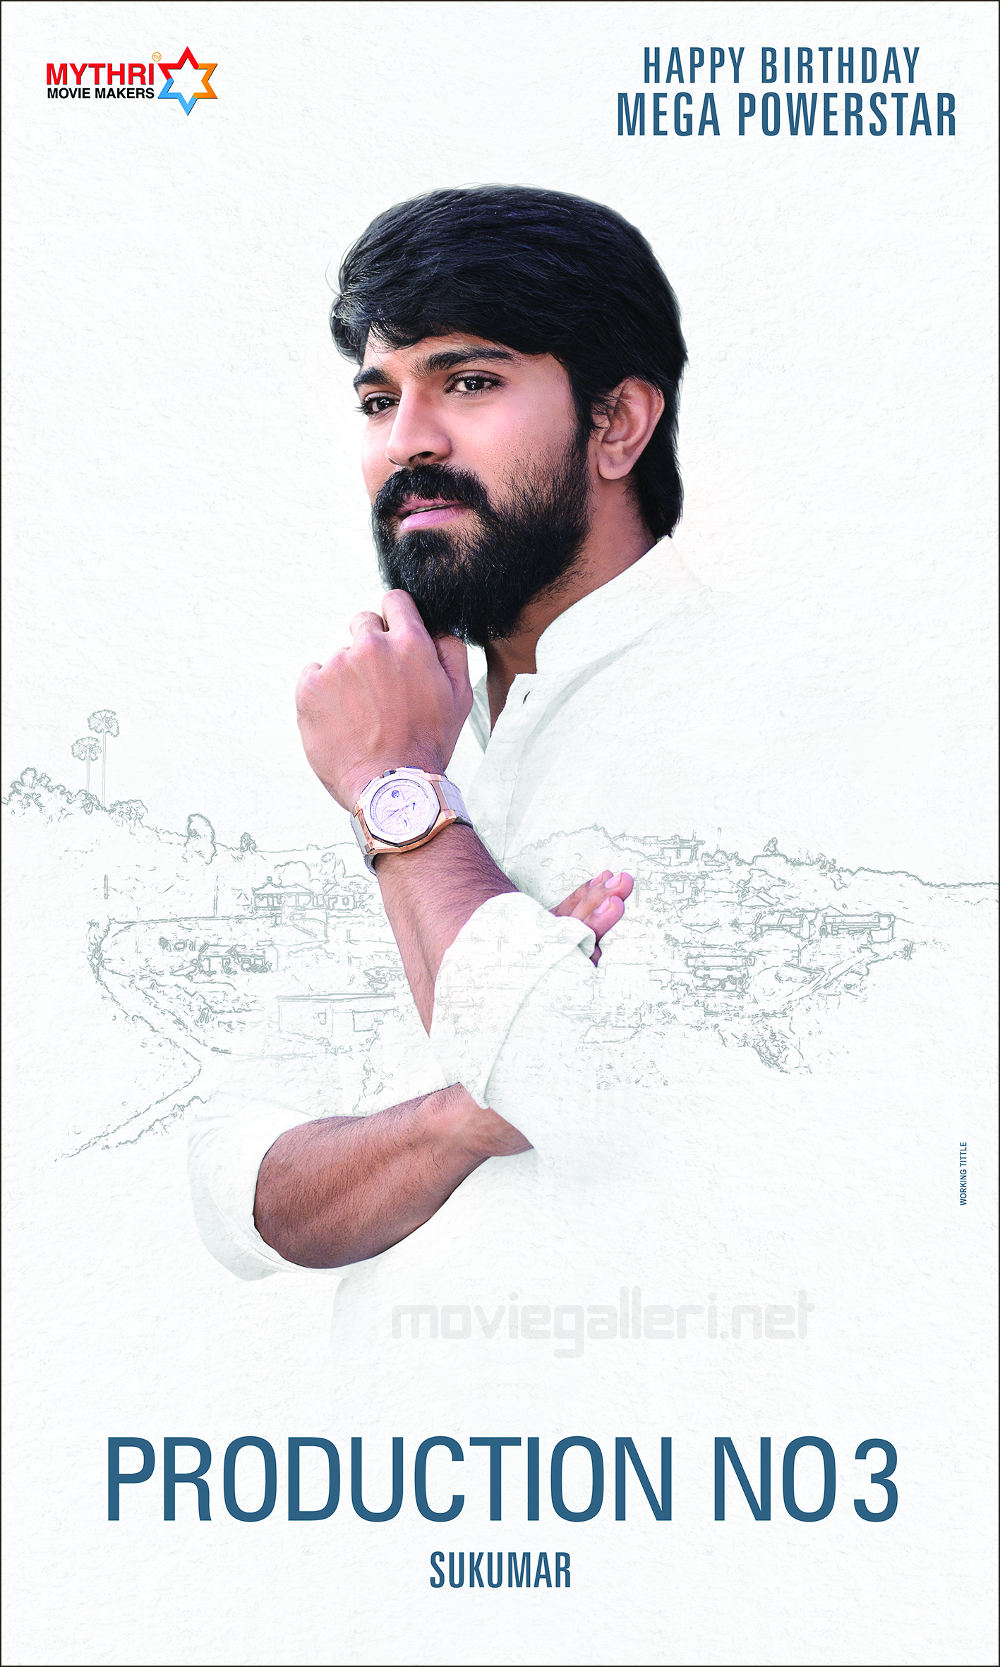 Ram Charan Sukumar Mythri Movies Birthday Wishes Poster